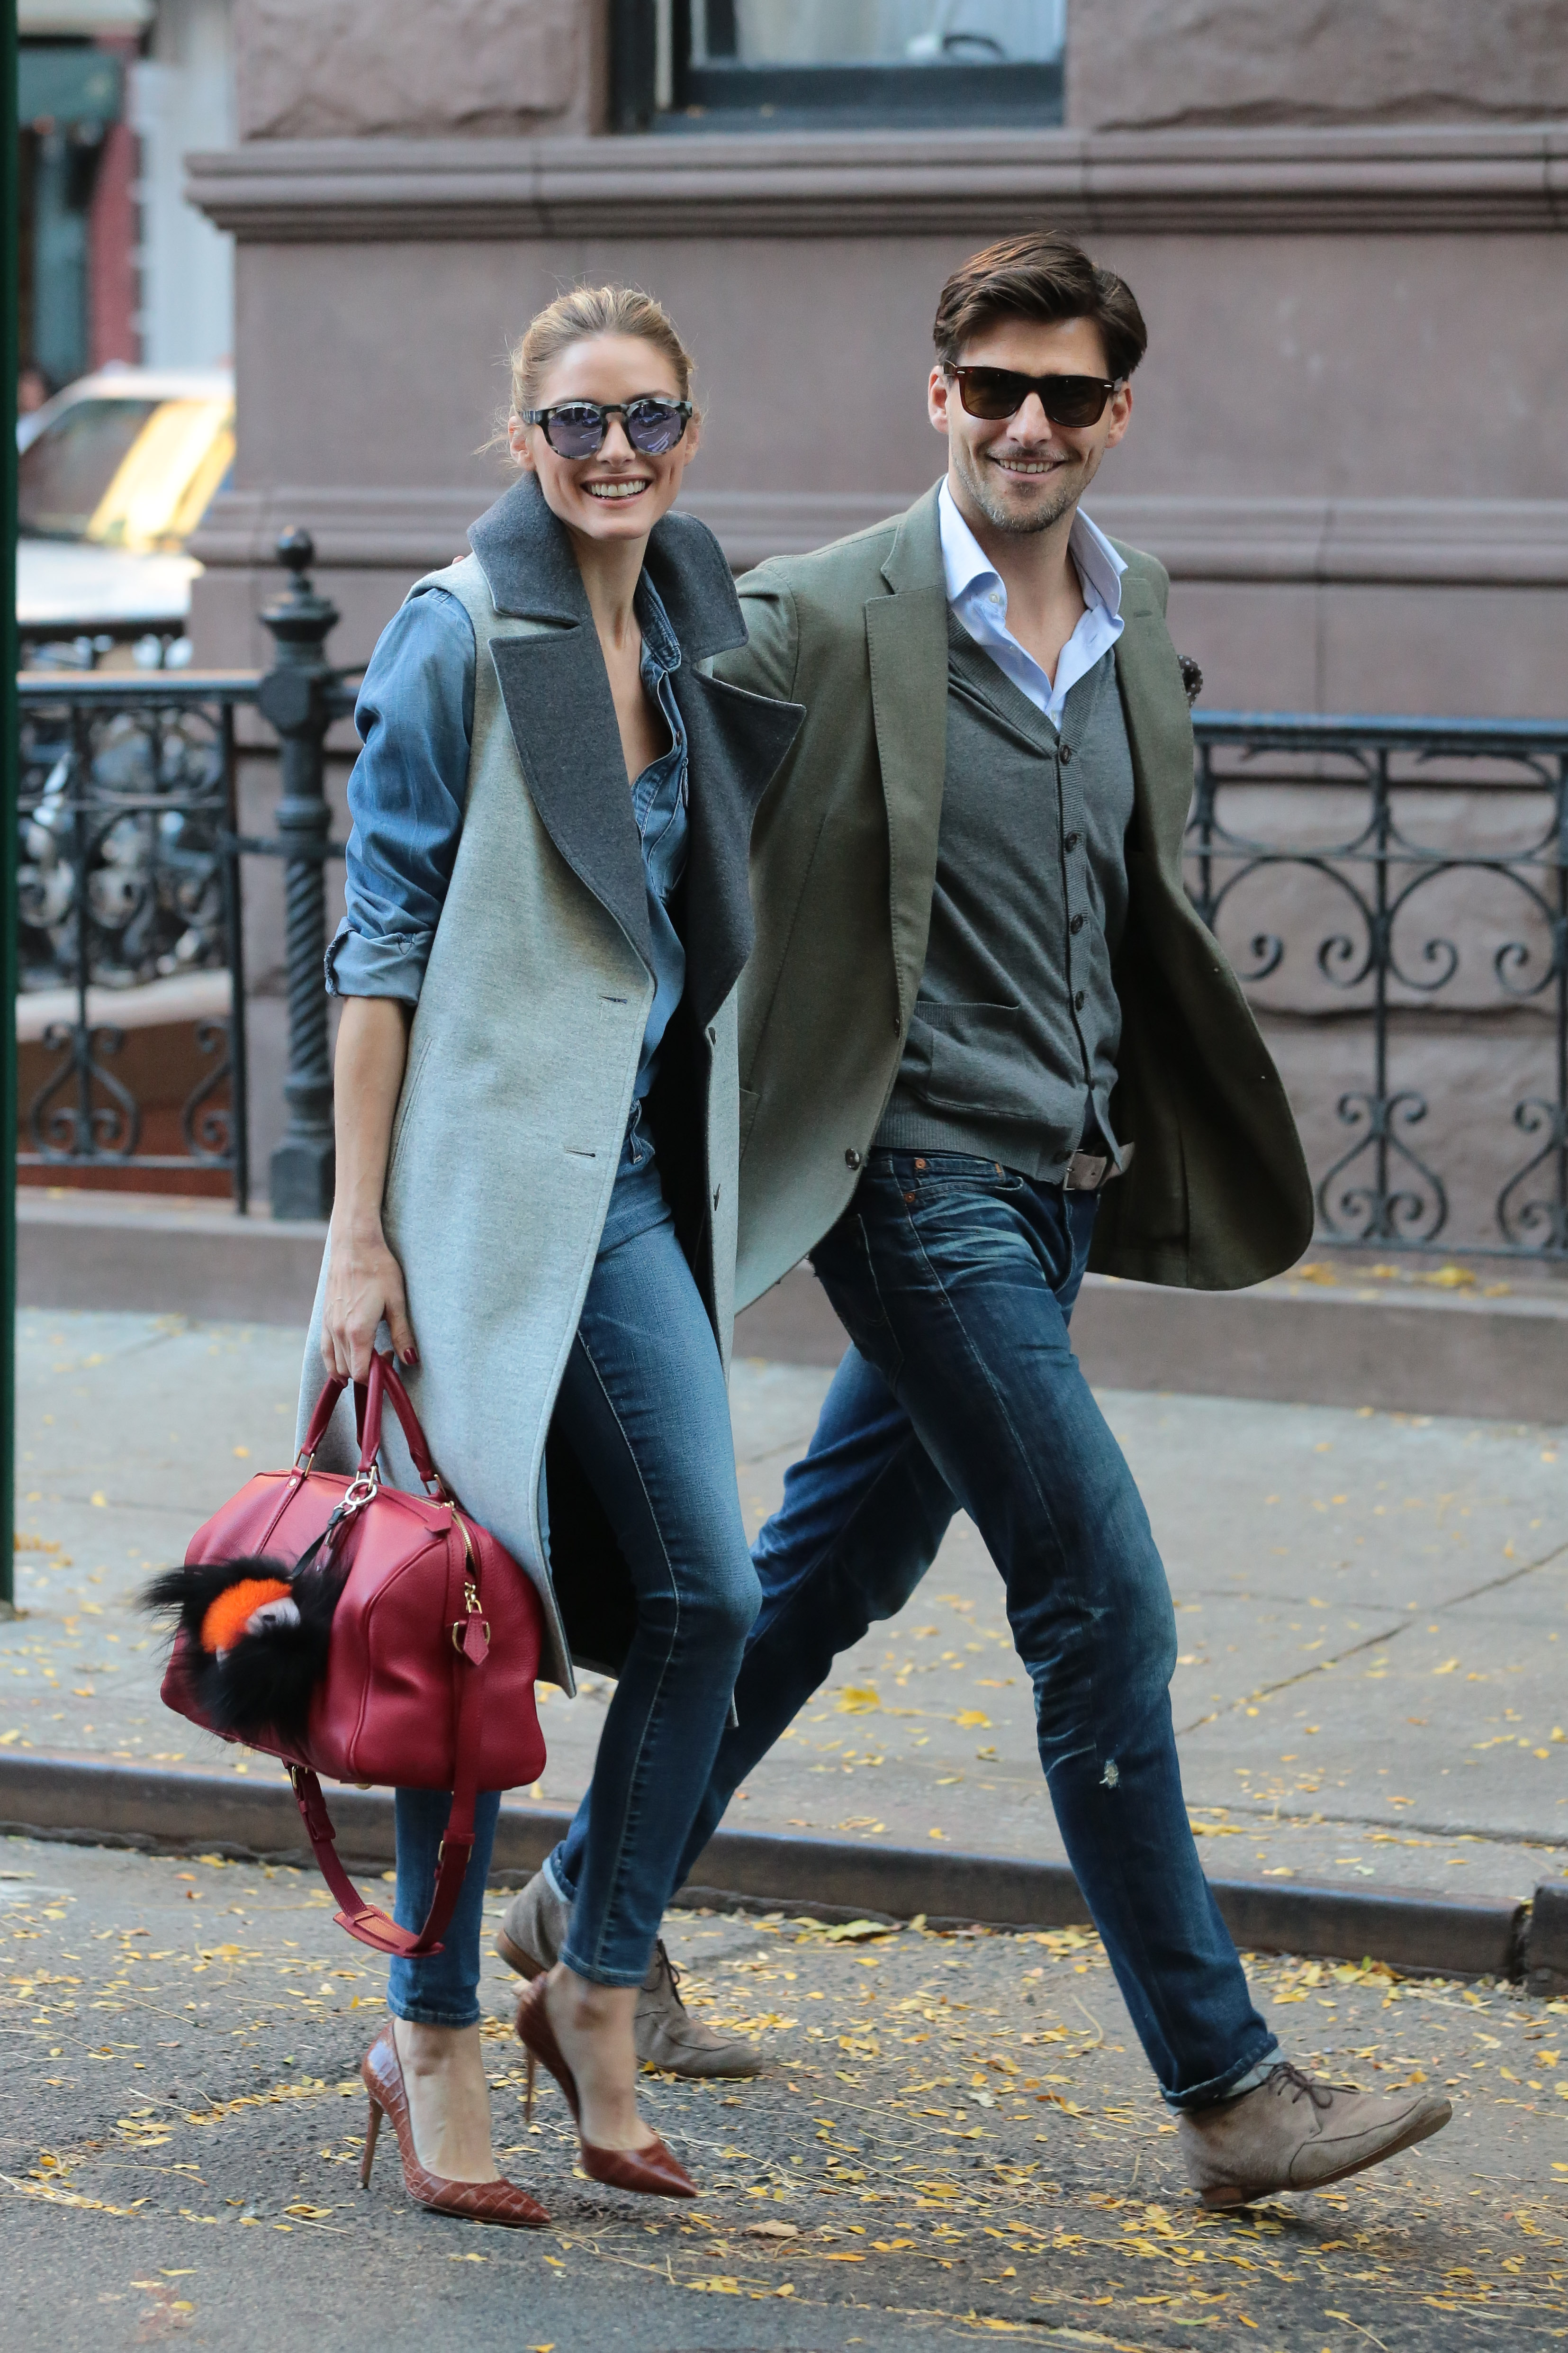 Olivia Palermo and her husband Johannes Huebl leaves Sant Ambroeus restaurant in West Village New York November 3, 2015 <P> Pictured: Olivia Palermo, Johannes Huebl <B>Ref: SPL1167670  031115  </B><BR/> Picture by: NIGNY / Splash News<BR/> </P><P> <B>Splash News and Pictures</B><BR/> Los Angeles:310-821-2666<BR/> New York:212-619-2666<BR/> London:870-934-2666<BR/> <span id=